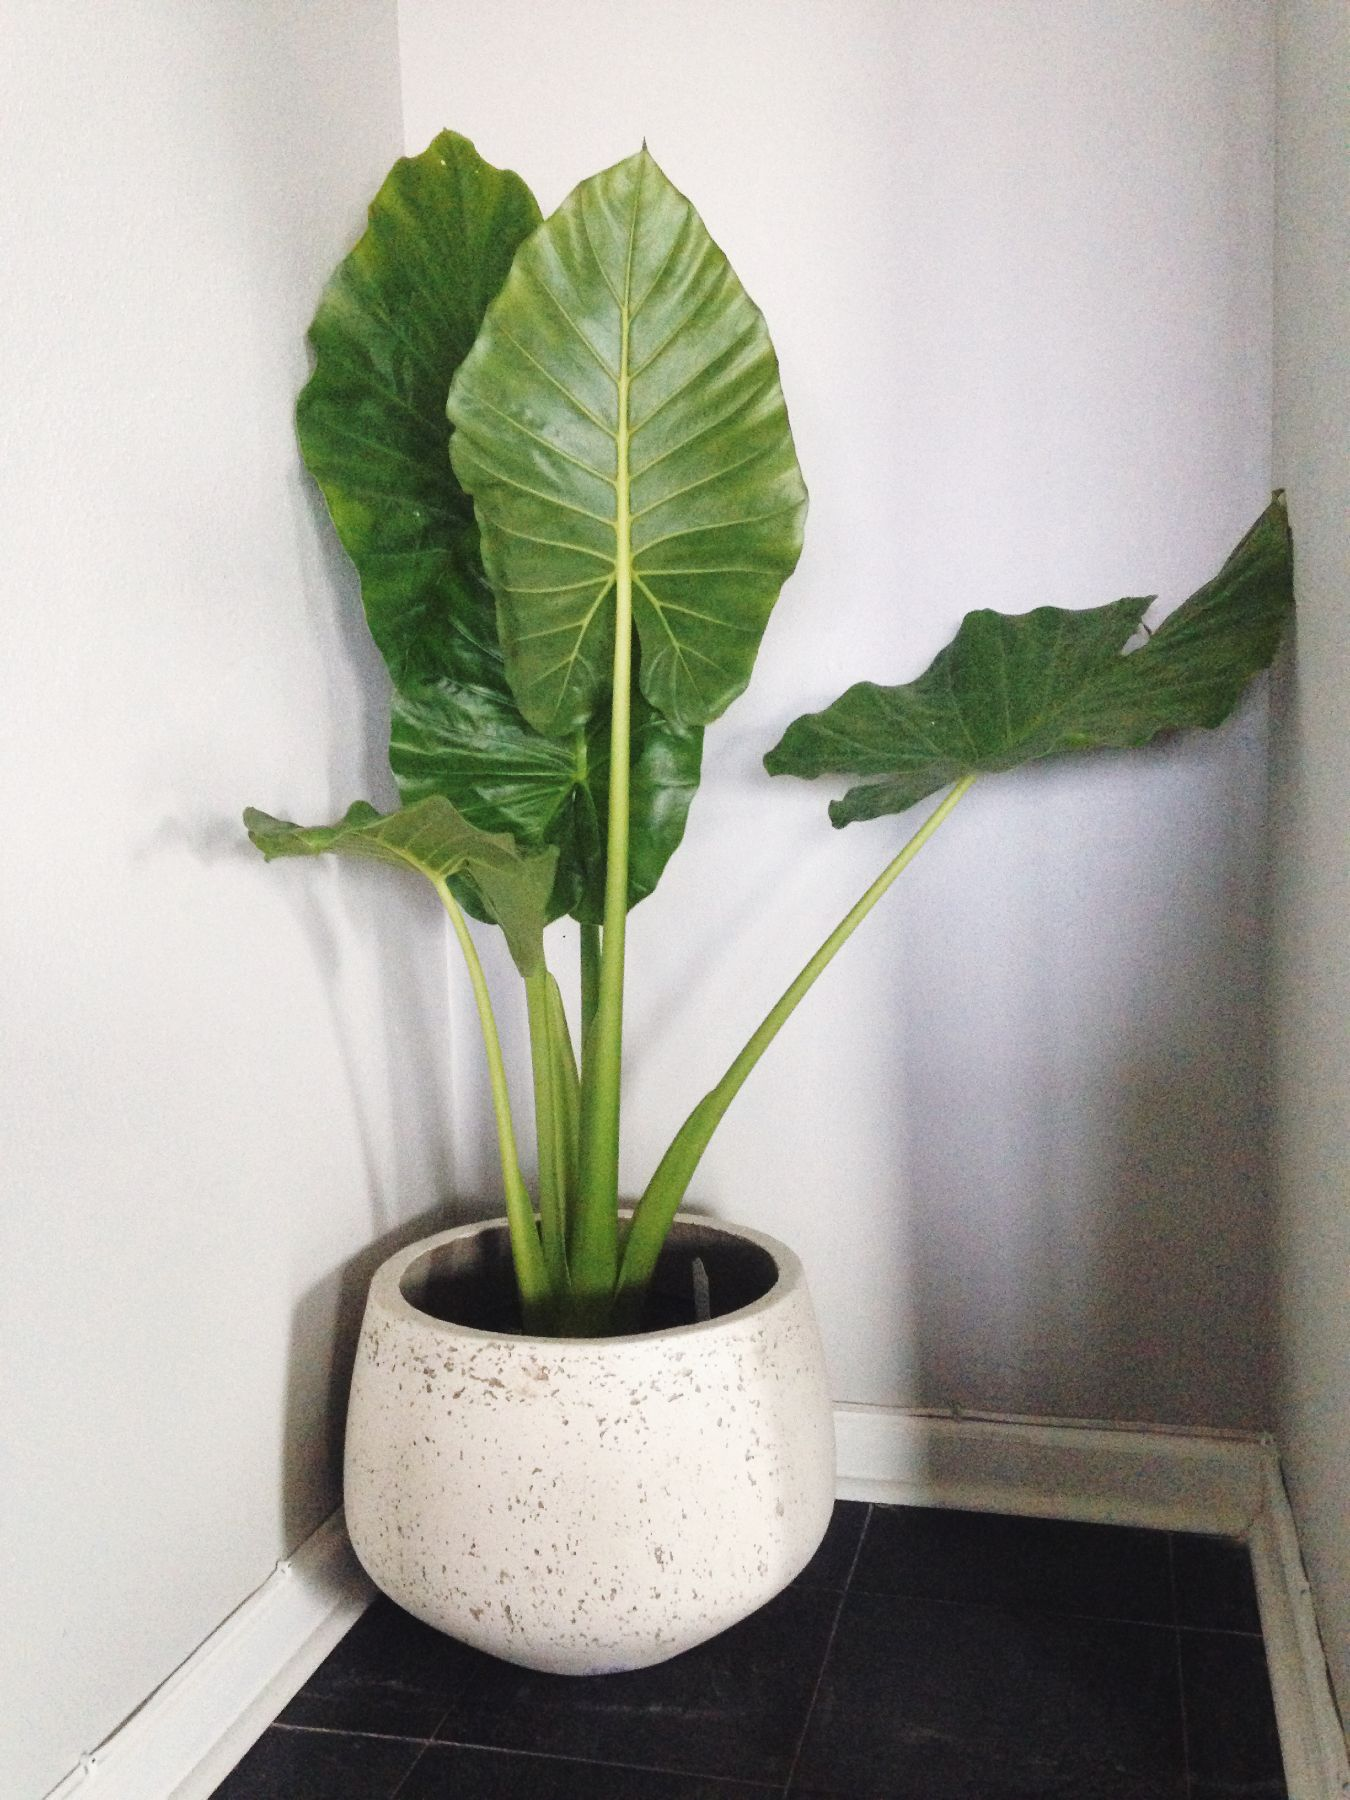 Alocasia Calidora Or Better Known As Elephant Ears Is A Beautiful